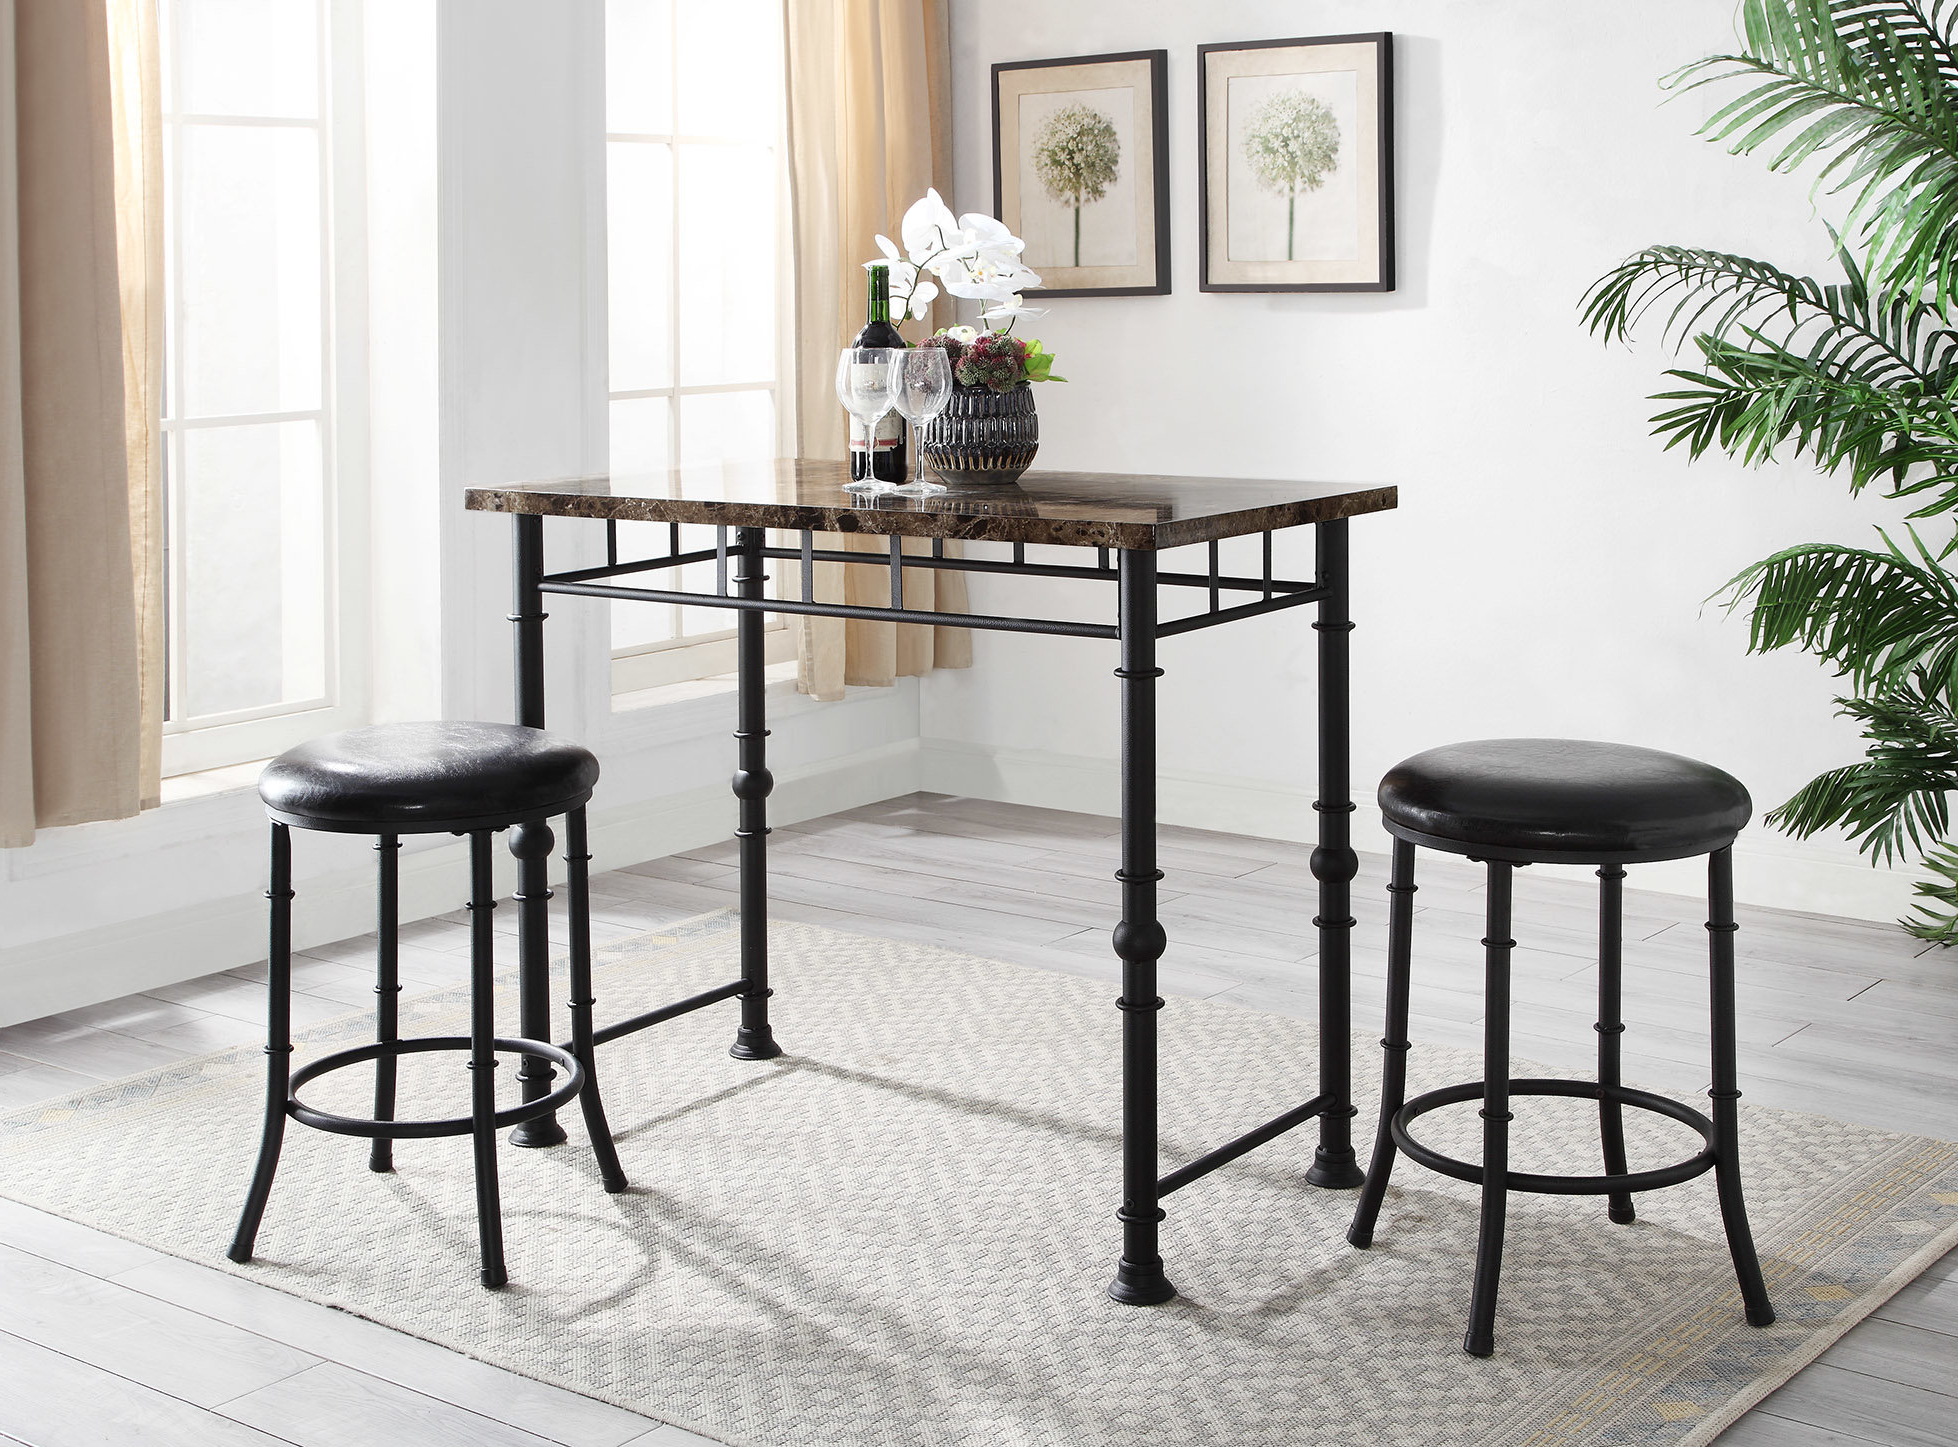 Details About Williston Forge Giles Dining Set Inside Well Liked Debby Small Space 3 Piece Dining Sets (View 13 of 25)